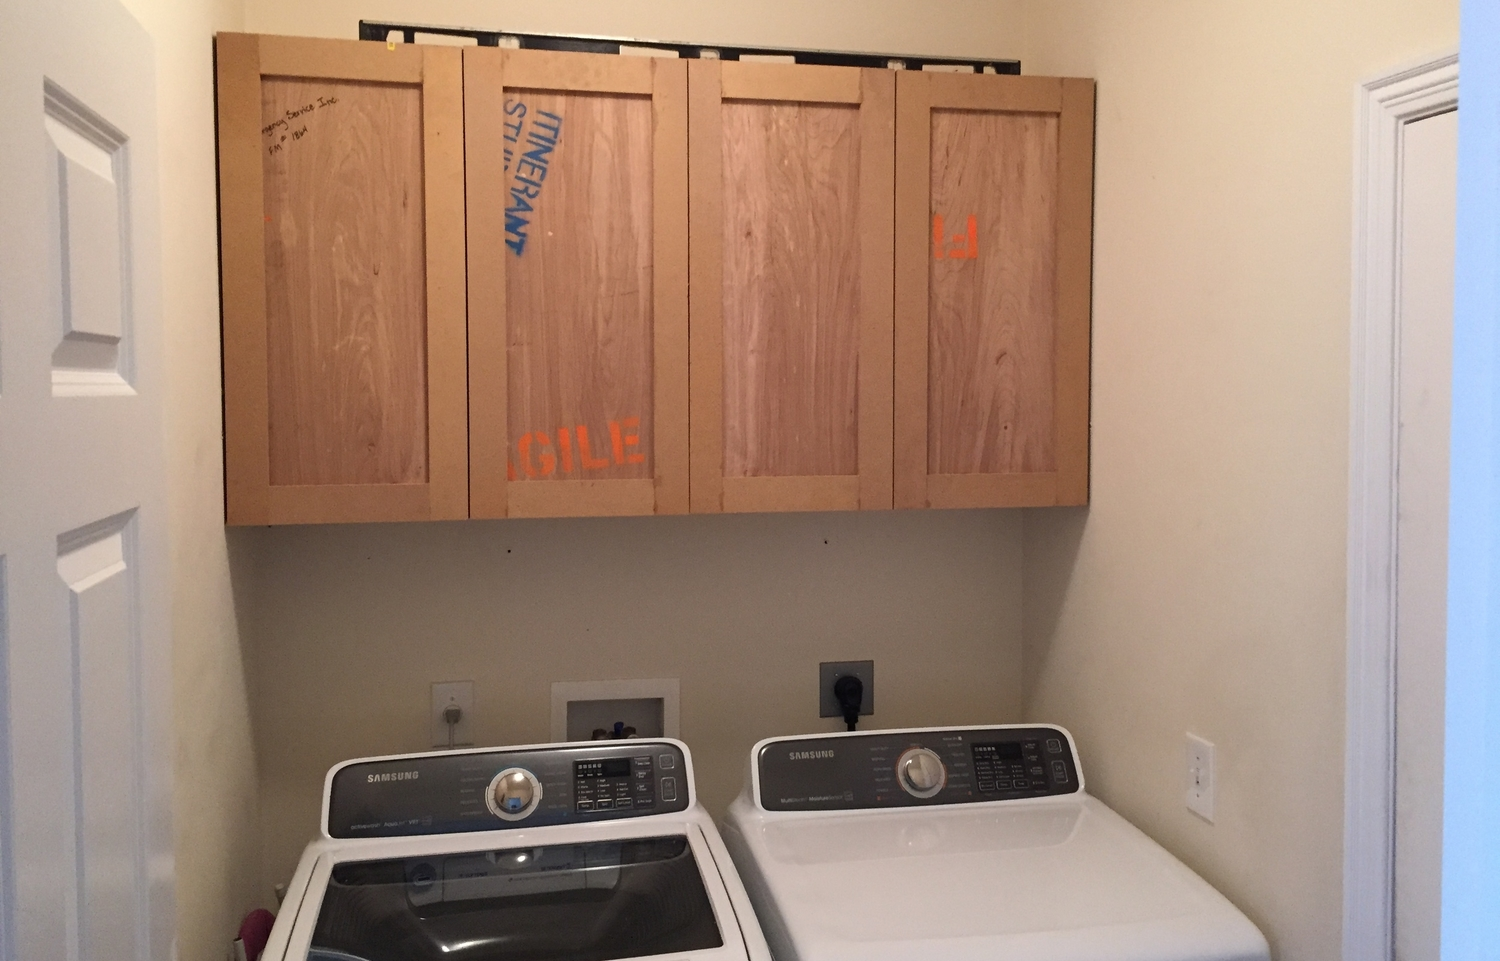 How to build upper cabinets laundry room makeover revival how to build upper cabinets laundry room makeover solutioingenieria Image collections